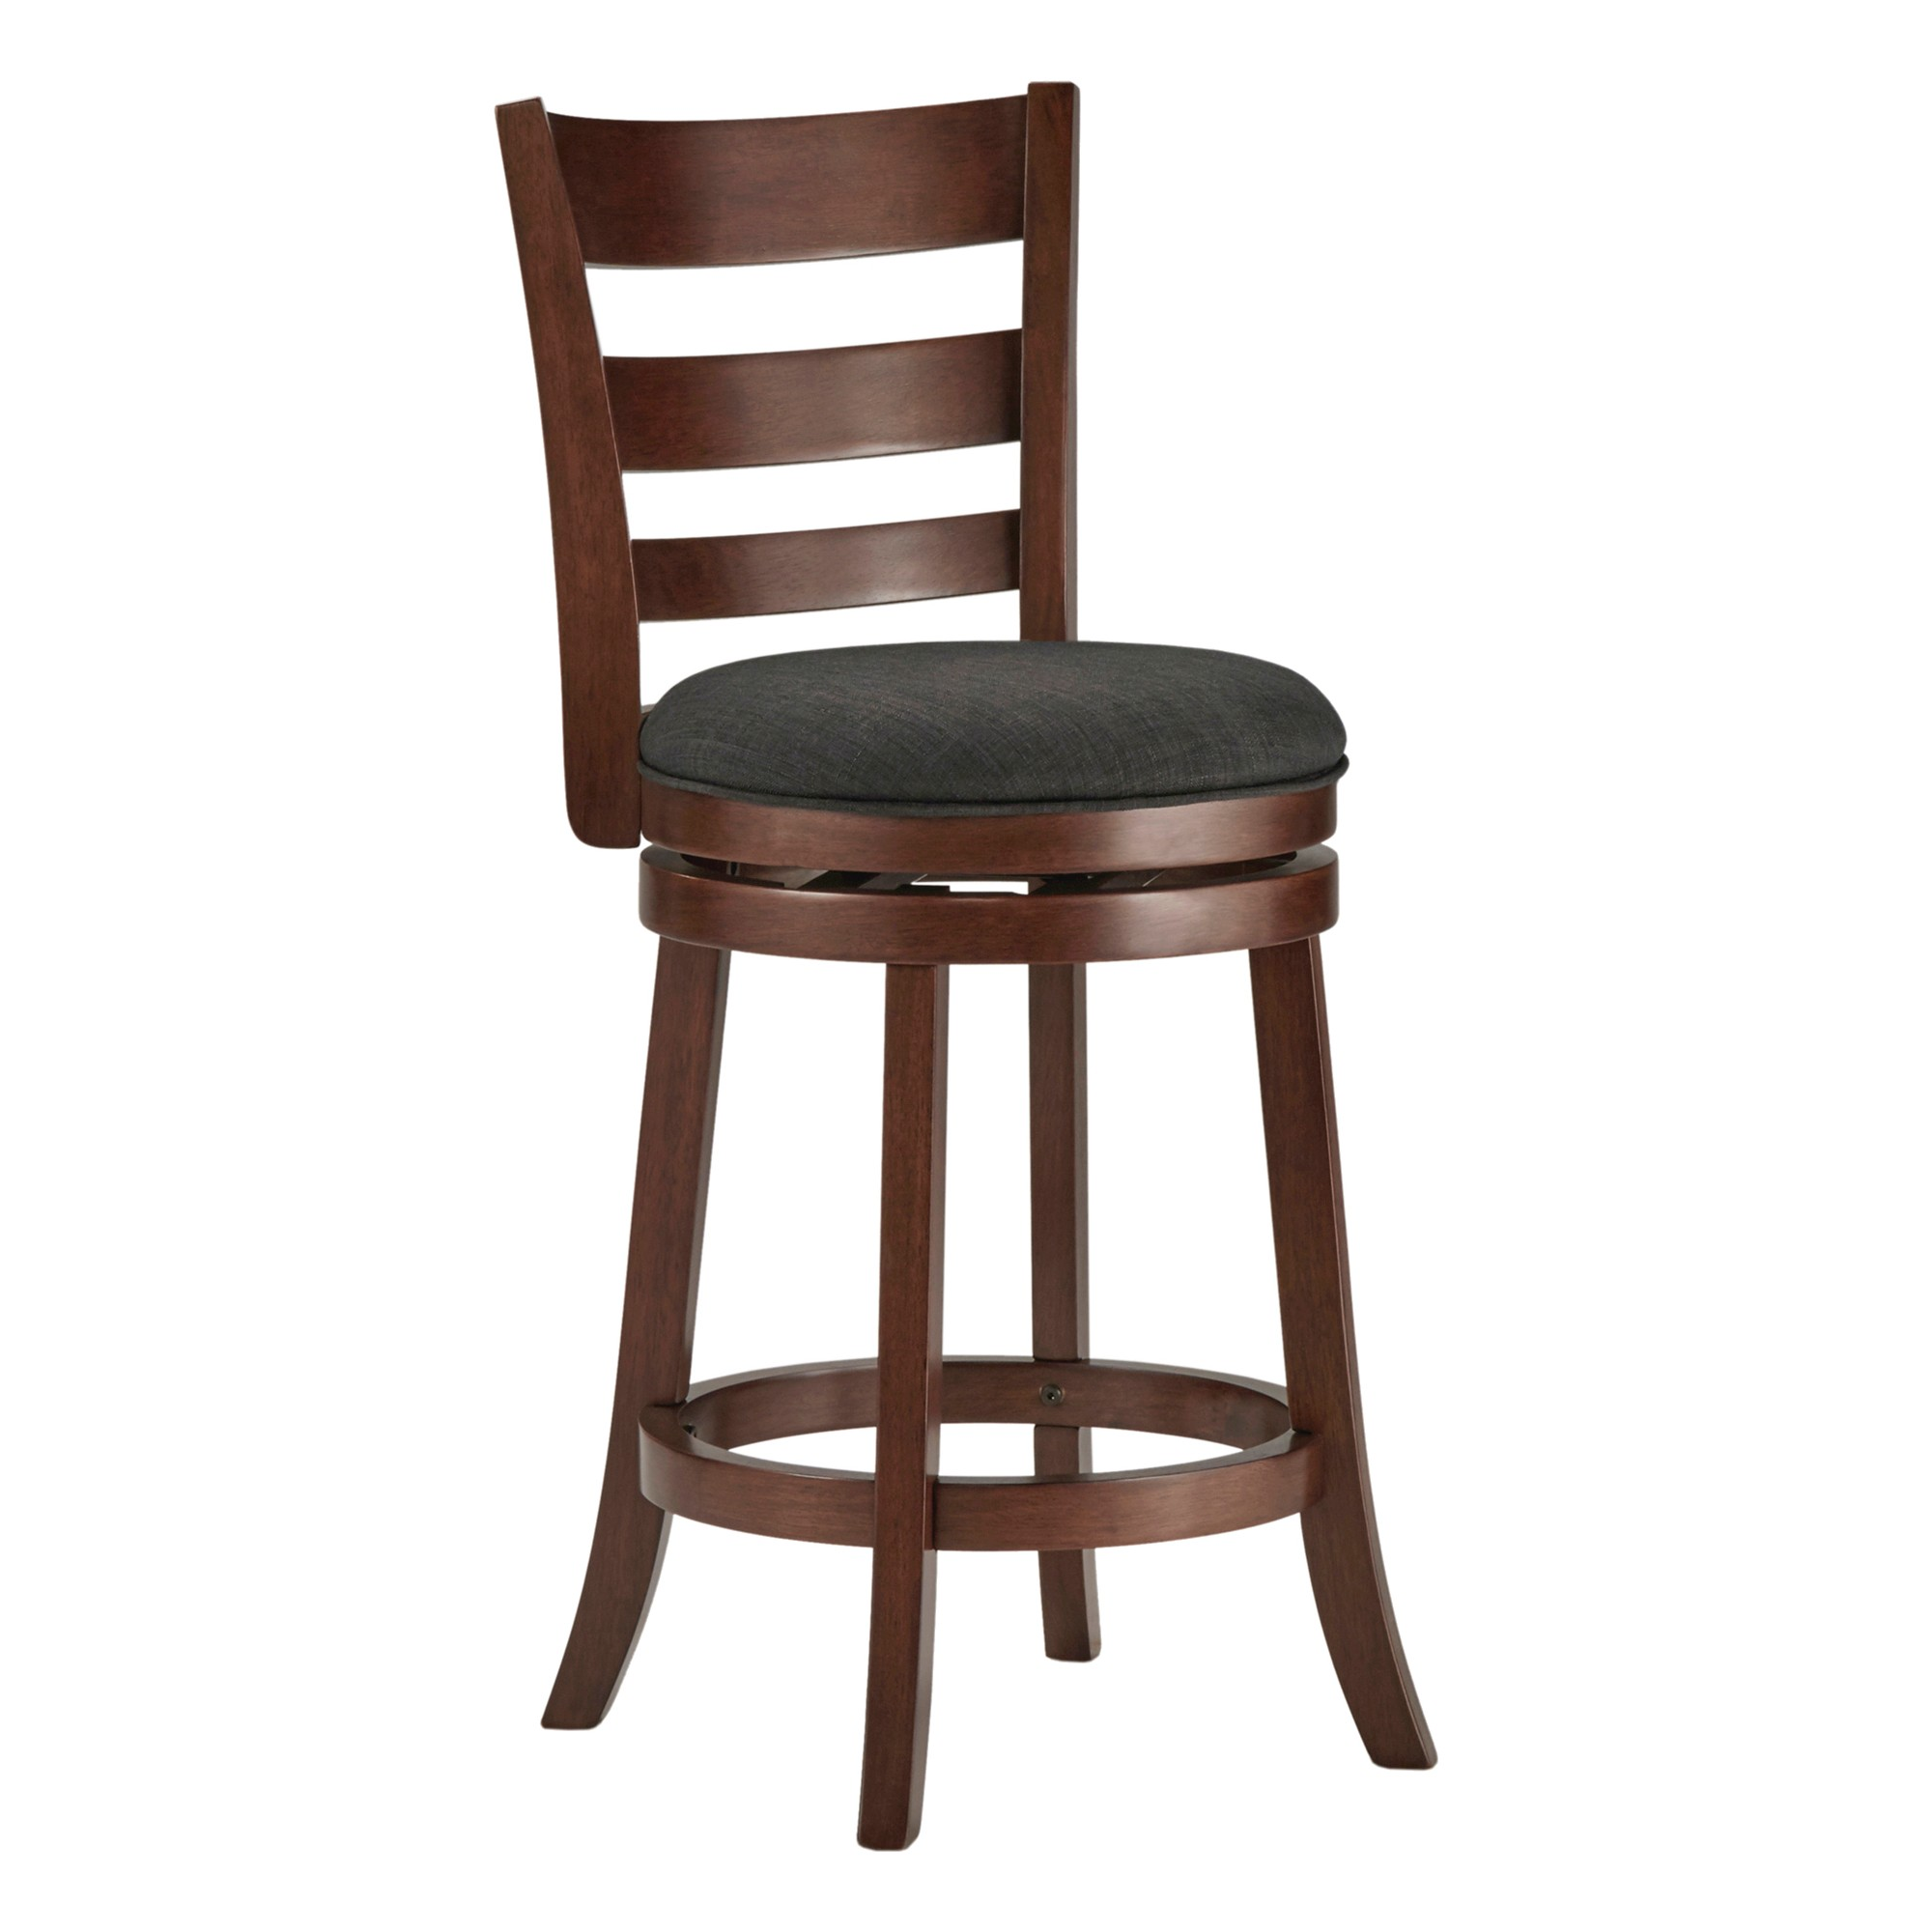 Magnificent Hooper Swivel Counter Stool Wood Homelegance Products Caraccident5 Cool Chair Designs And Ideas Caraccident5Info